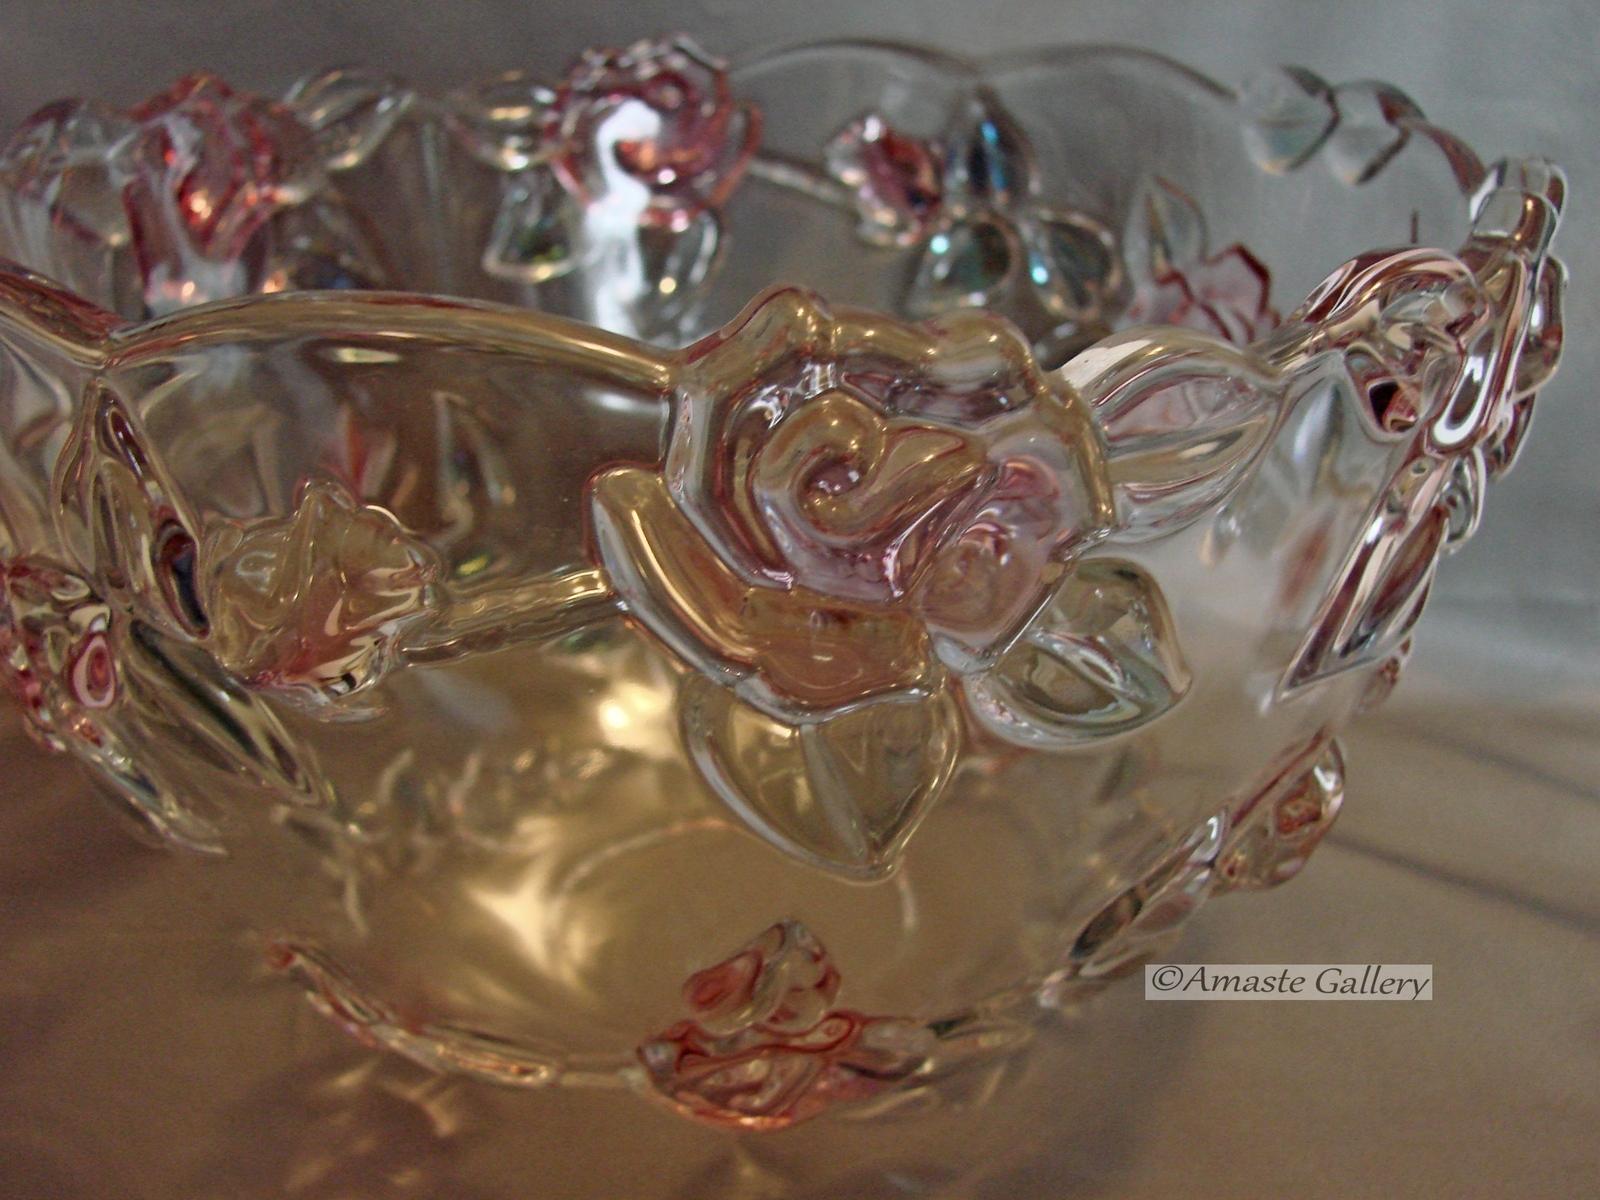 Mikasa Centerpiece Table Bowl with Raised Roses and Leaves image 2